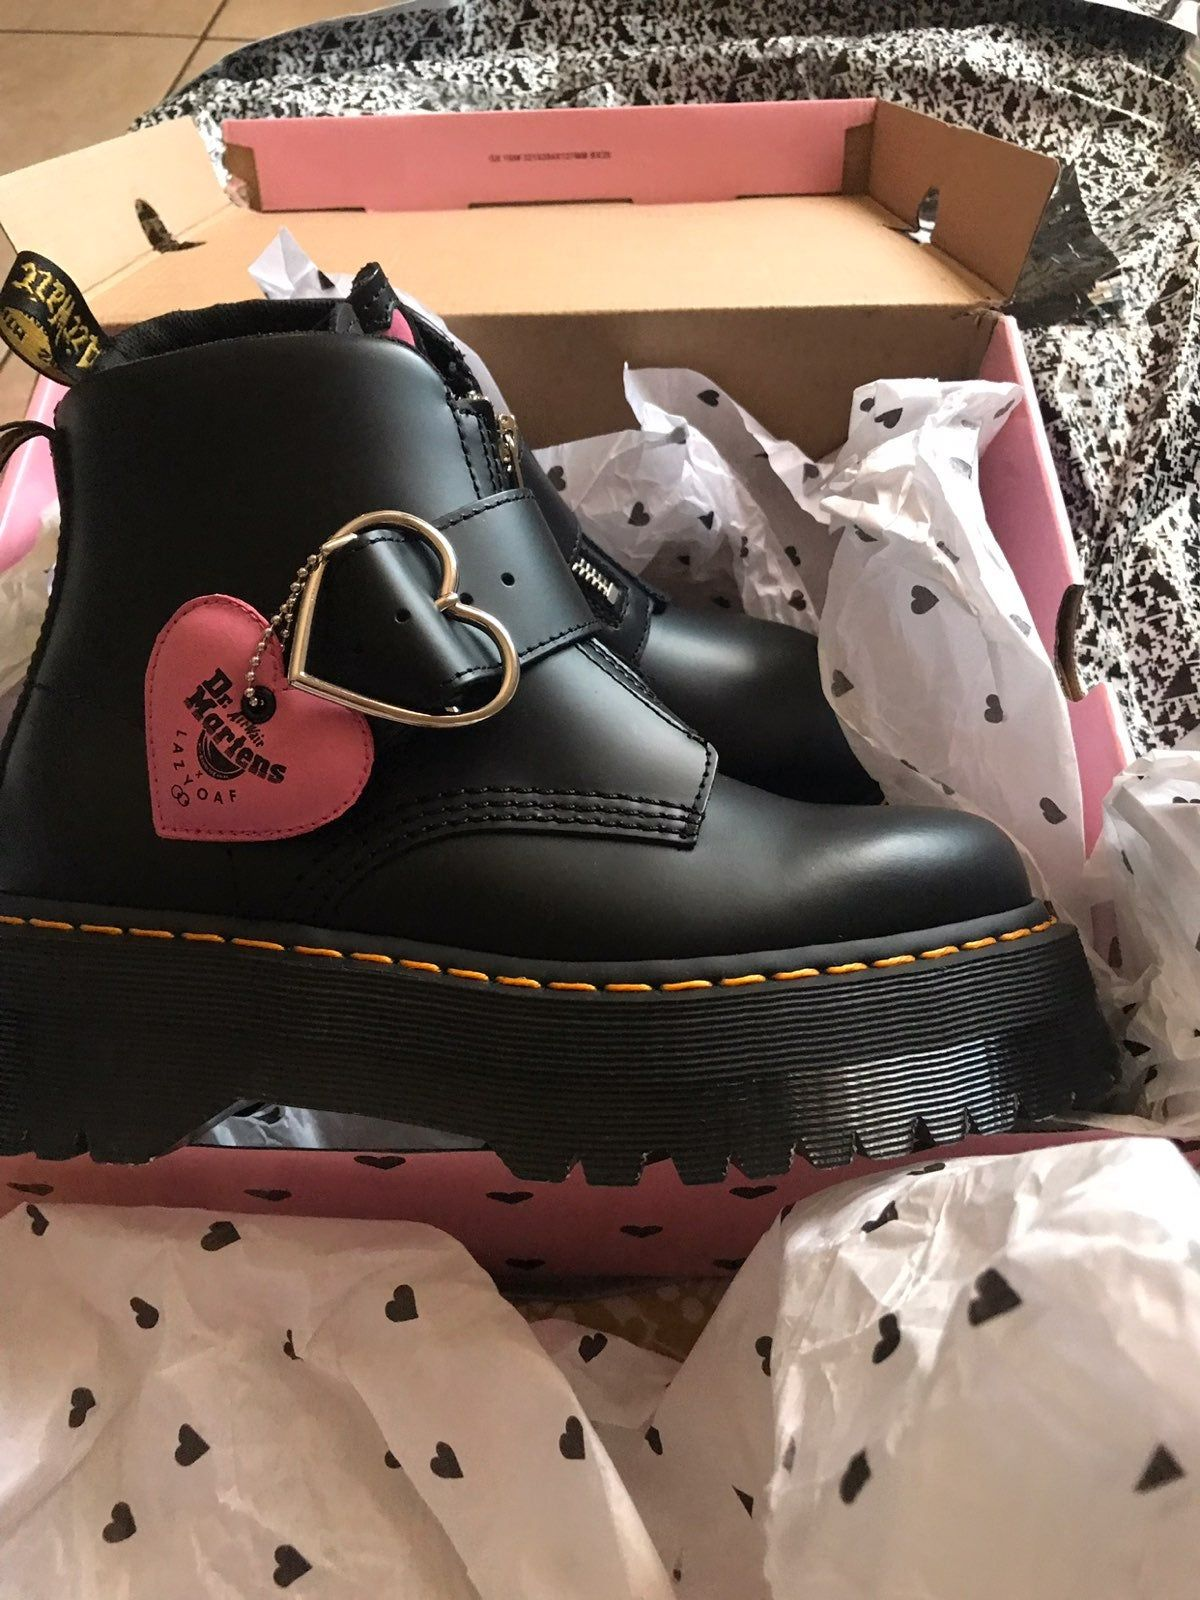 The platform boots from the Dr. martens x Lazy Oaf collaboration!! These have the cutest heart Buckle on the side and little heart details on tongue and back of the boot! (selling size 7 and 8) lmk if you have any questions :)